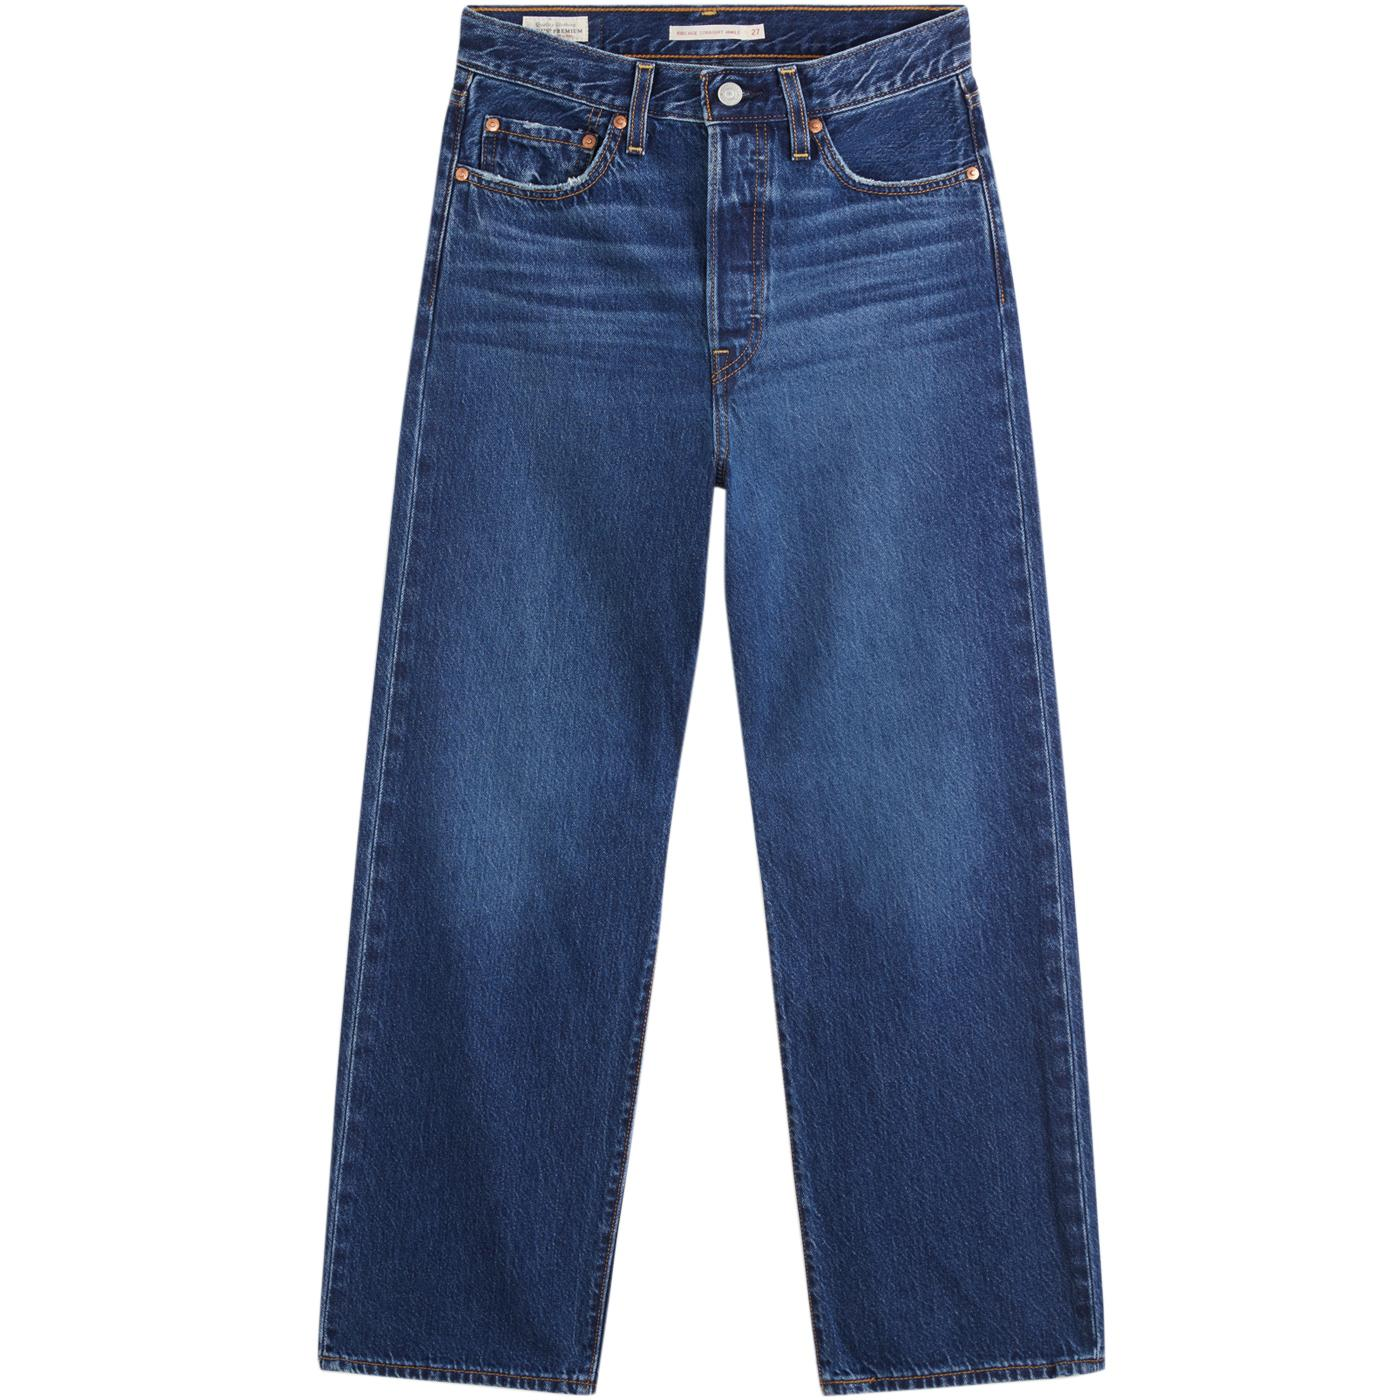 LEVI'S Ribcage Women's Straight High Rise Jeans ND